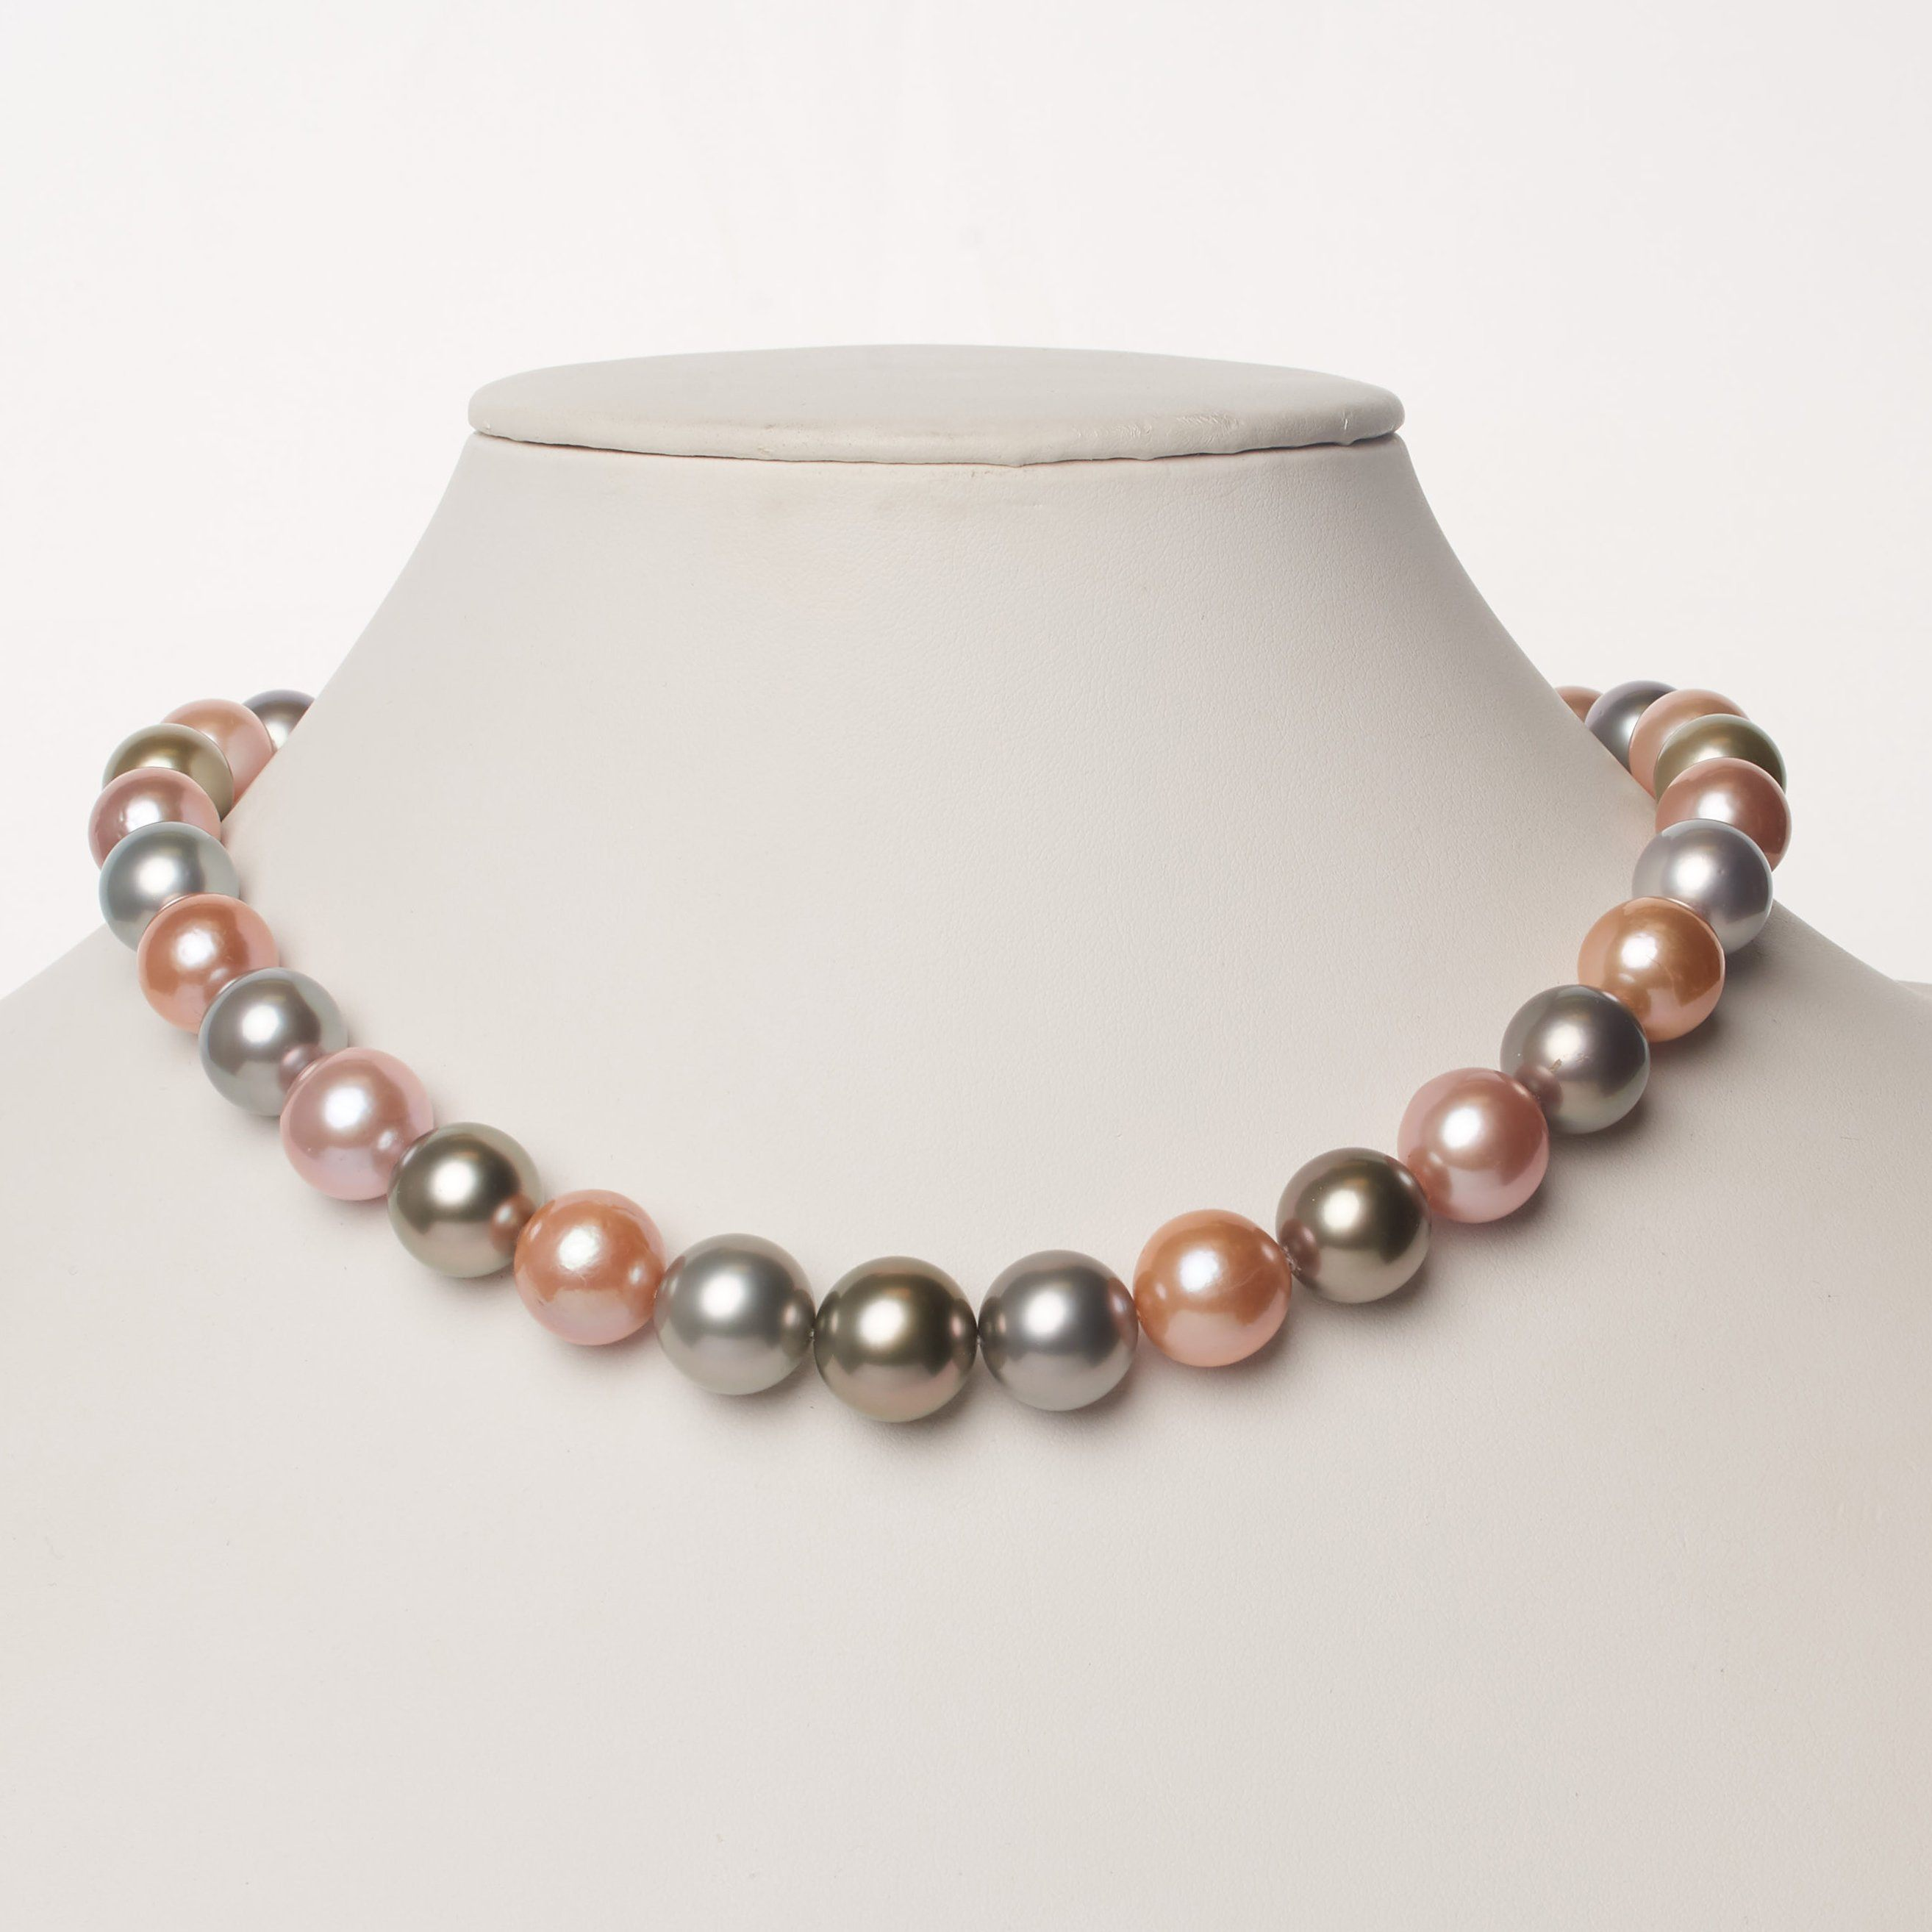 12.2-14.4 mm AAA Multicolored Round Pearl Necklace